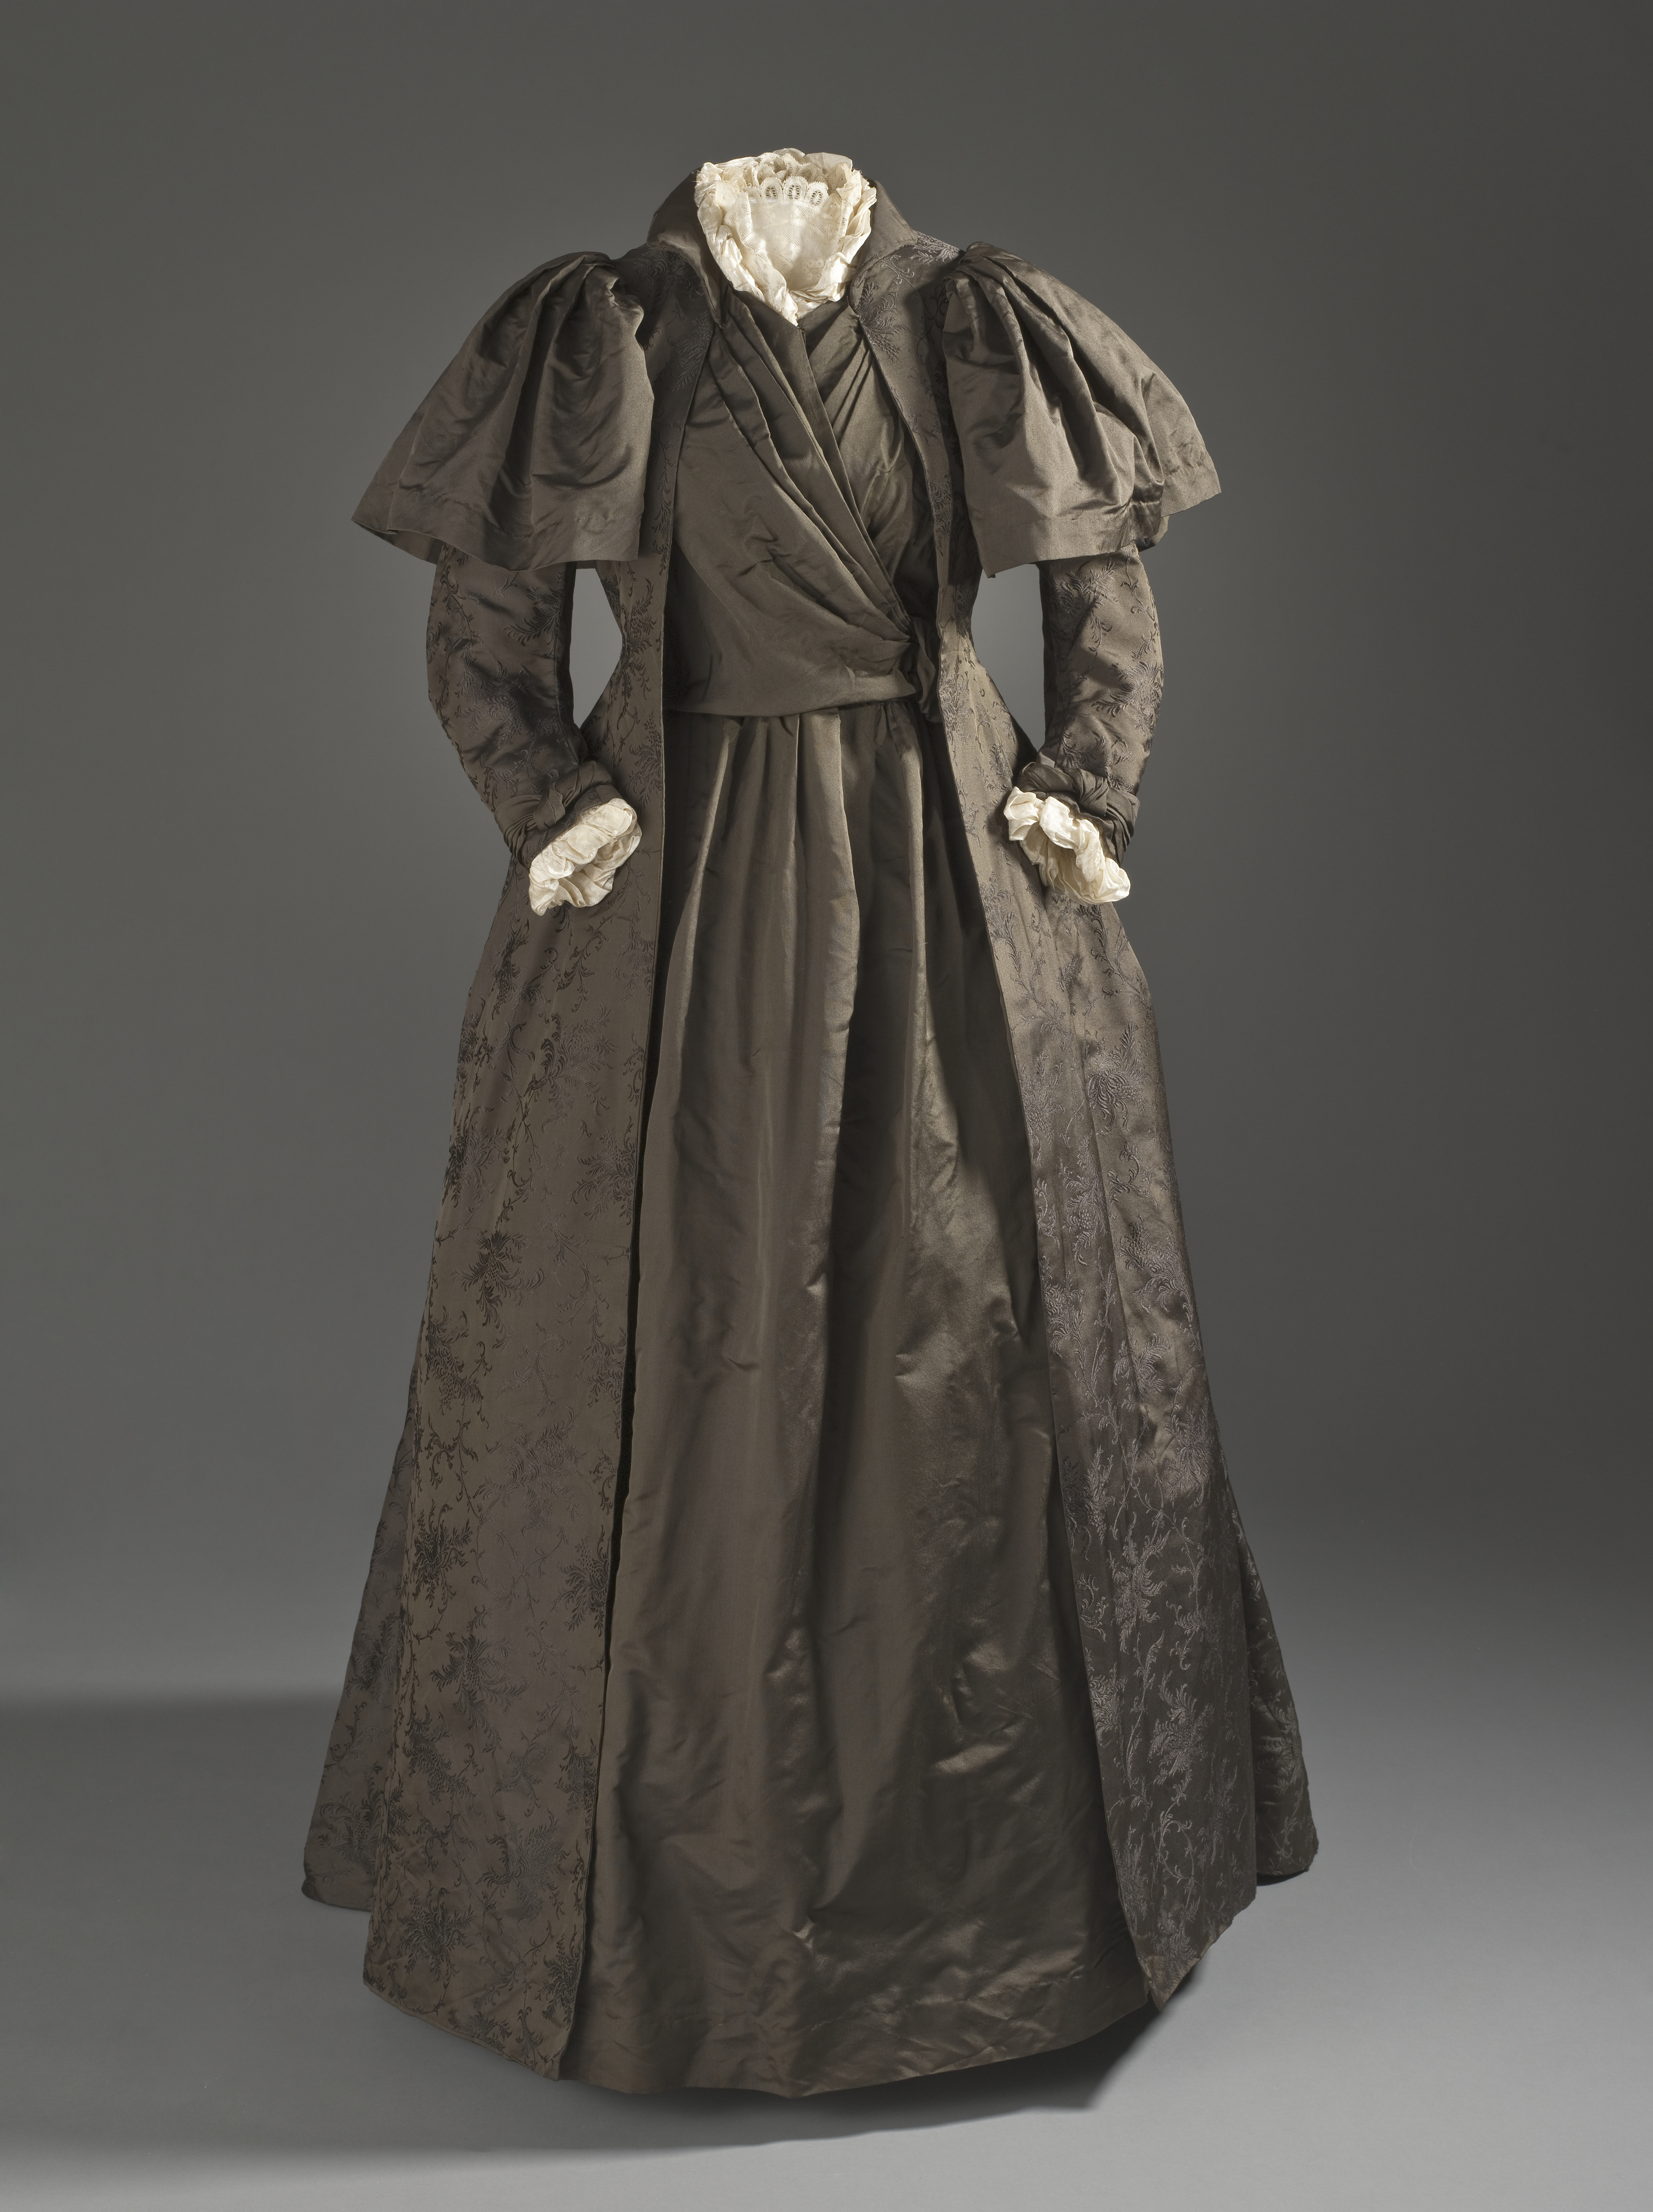 File:Liberty and Company tea gown c. 1887.jpg - Wikimedia Commons